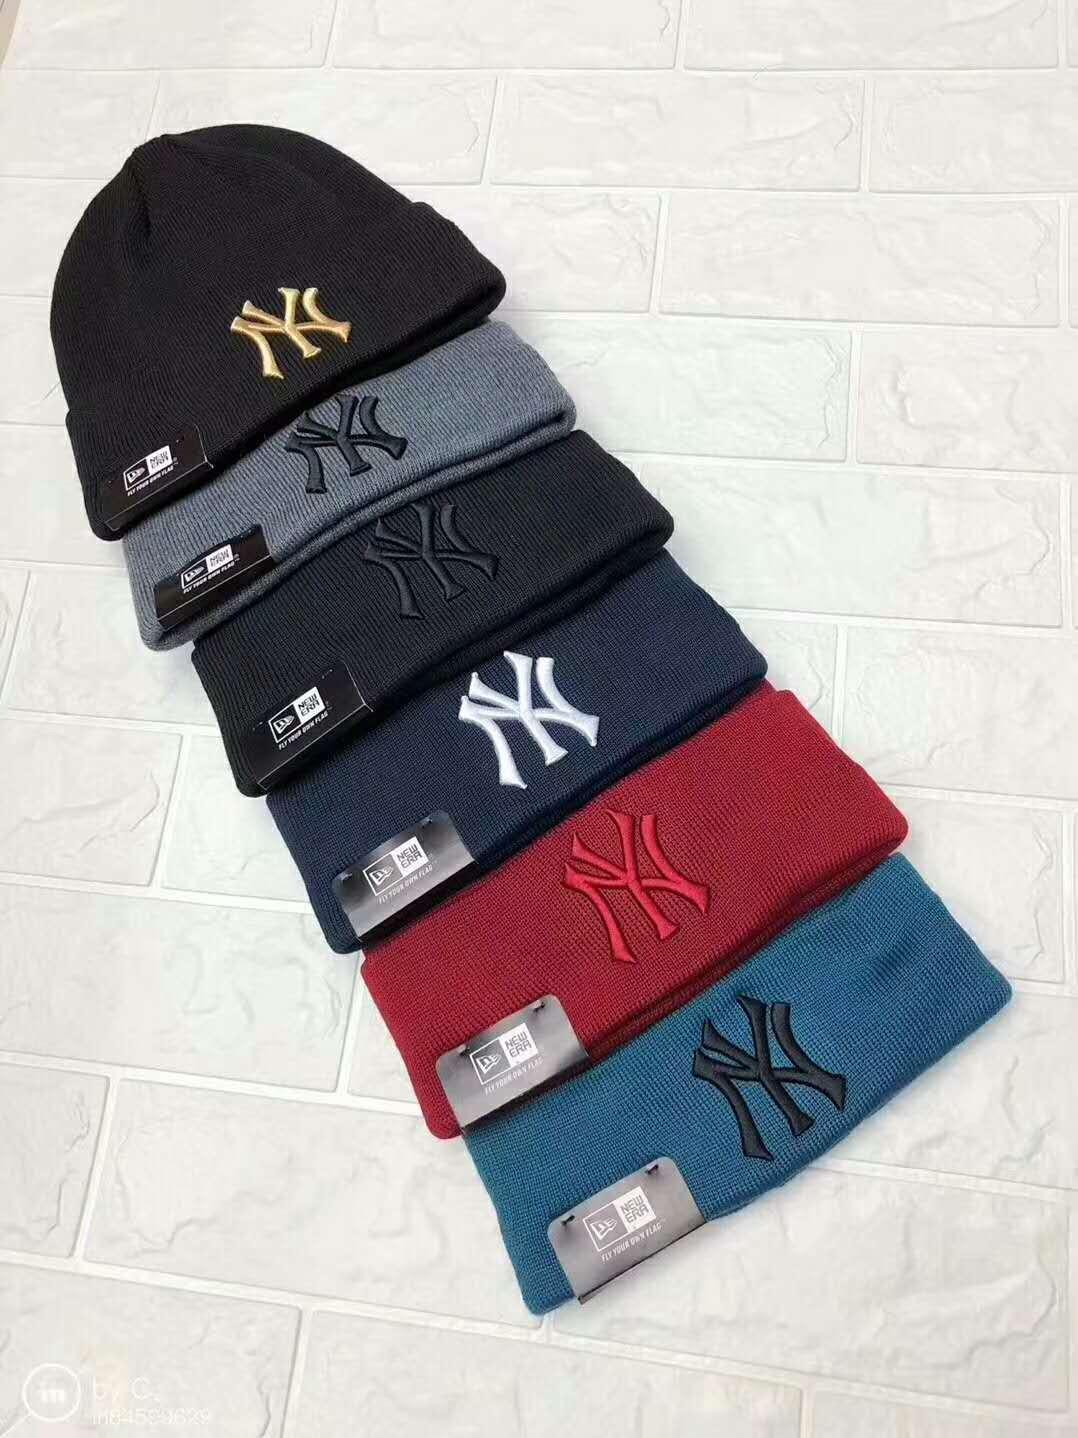 NY Yankees  Knit Cuff Beanie Cap Hat Embroidery Graphite